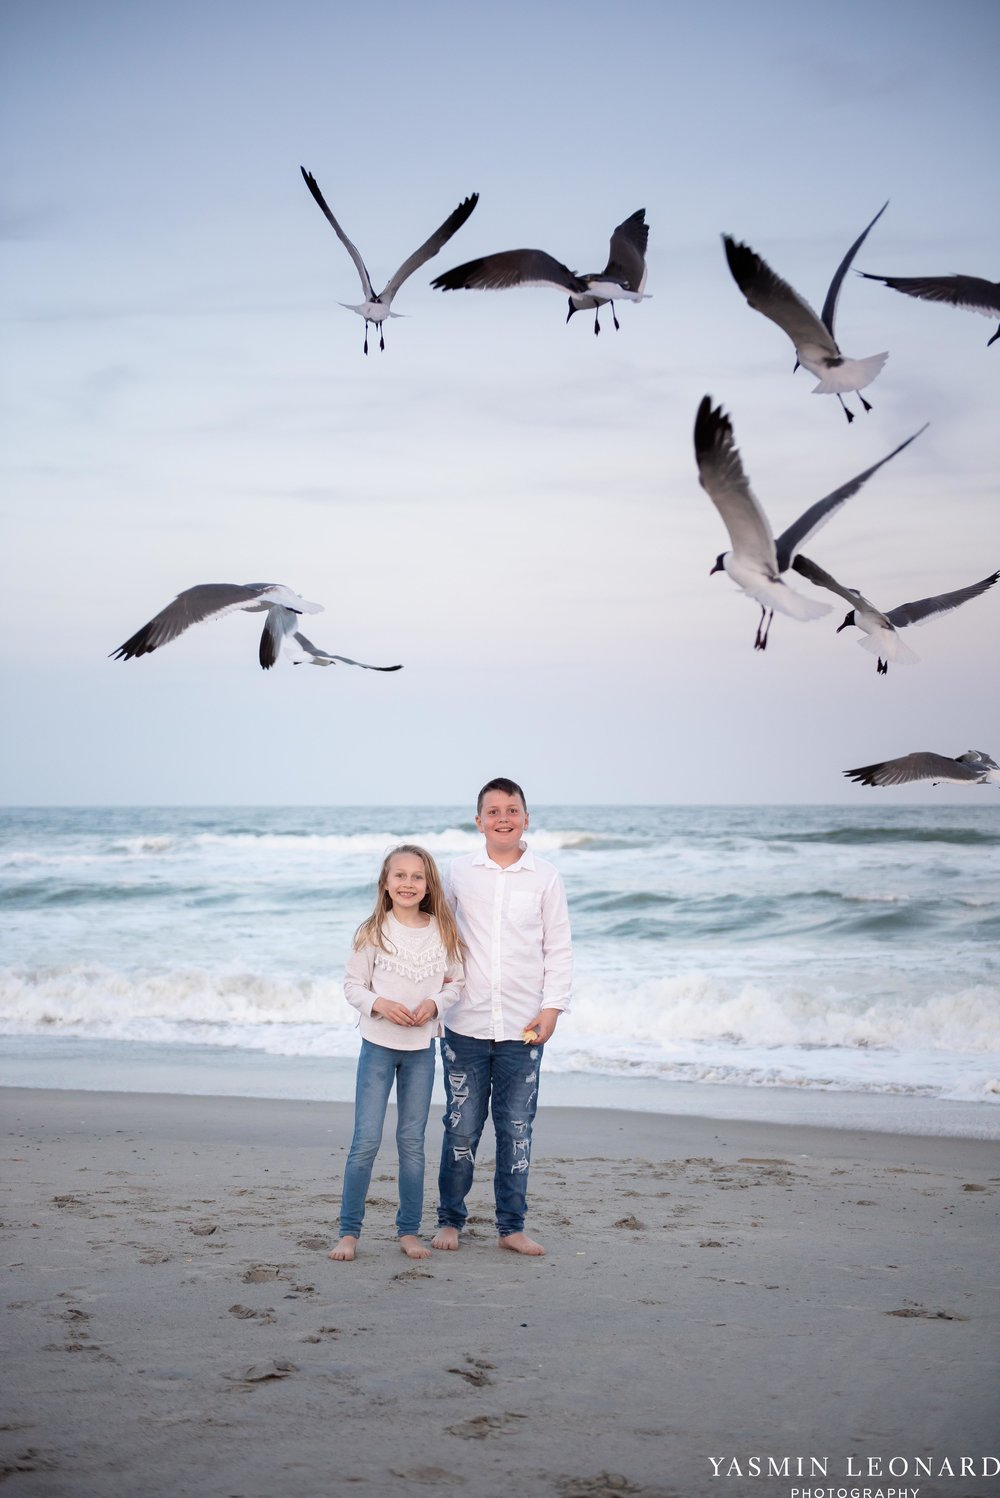 Sibling Beach Pictures - Caorlina Beach Portraits - Kure Beach Portraits - Sibling Beach Pictures - Family Pictures at the Beach - Seaguls and Children - Summer Picture Ideas - Sibling Poses-8.jpg